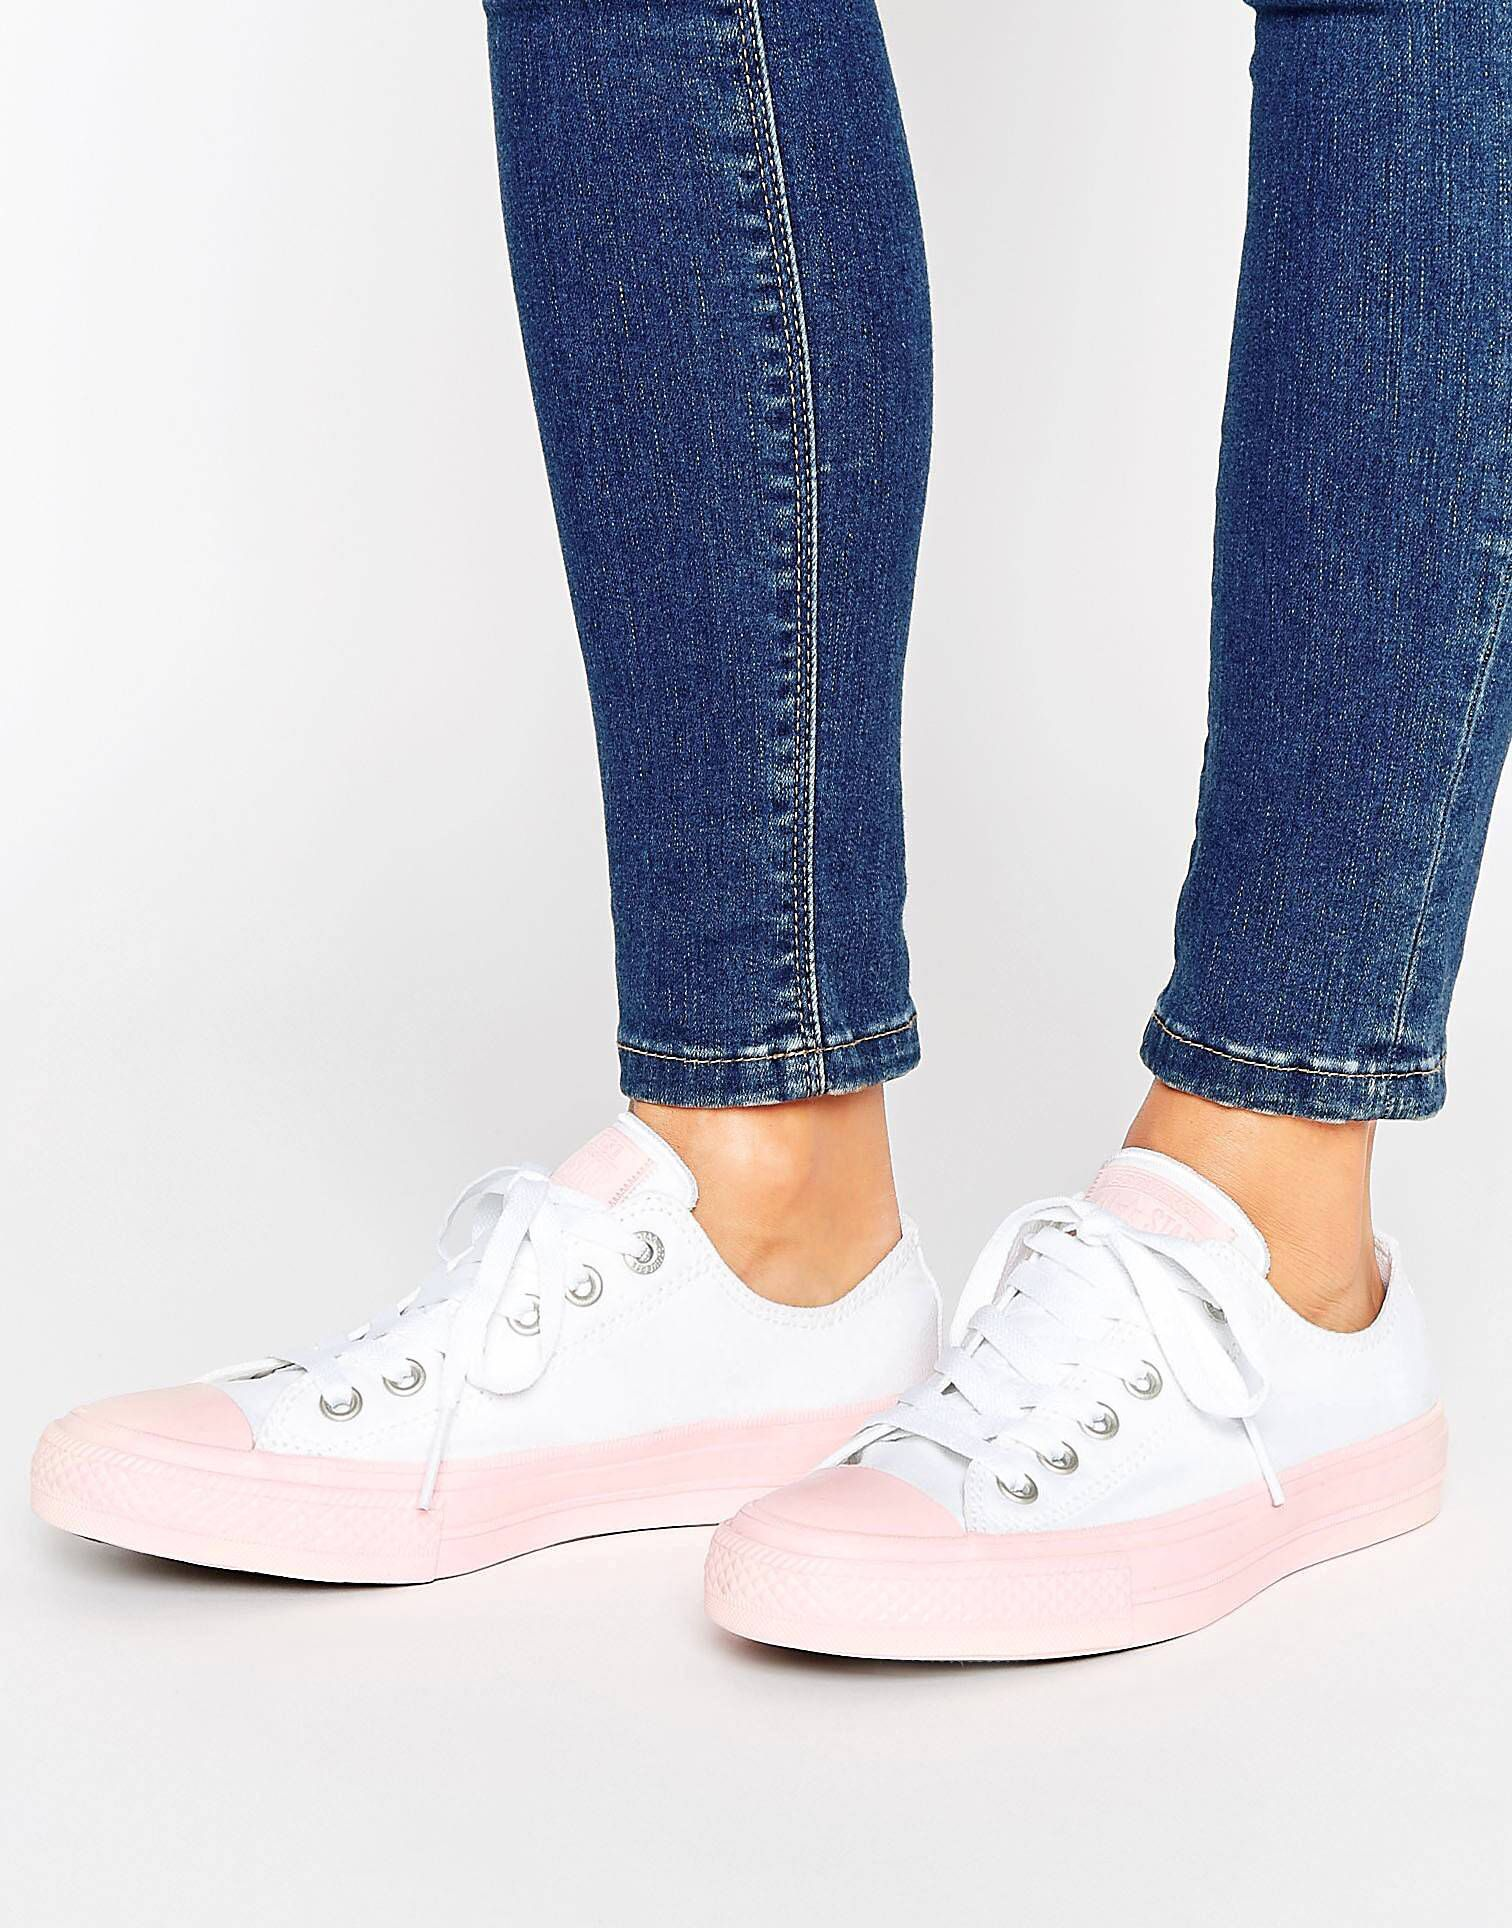 f736d2dce3c3 Converse Chuck Ii Ox Trainers With Pastel Mid Sole